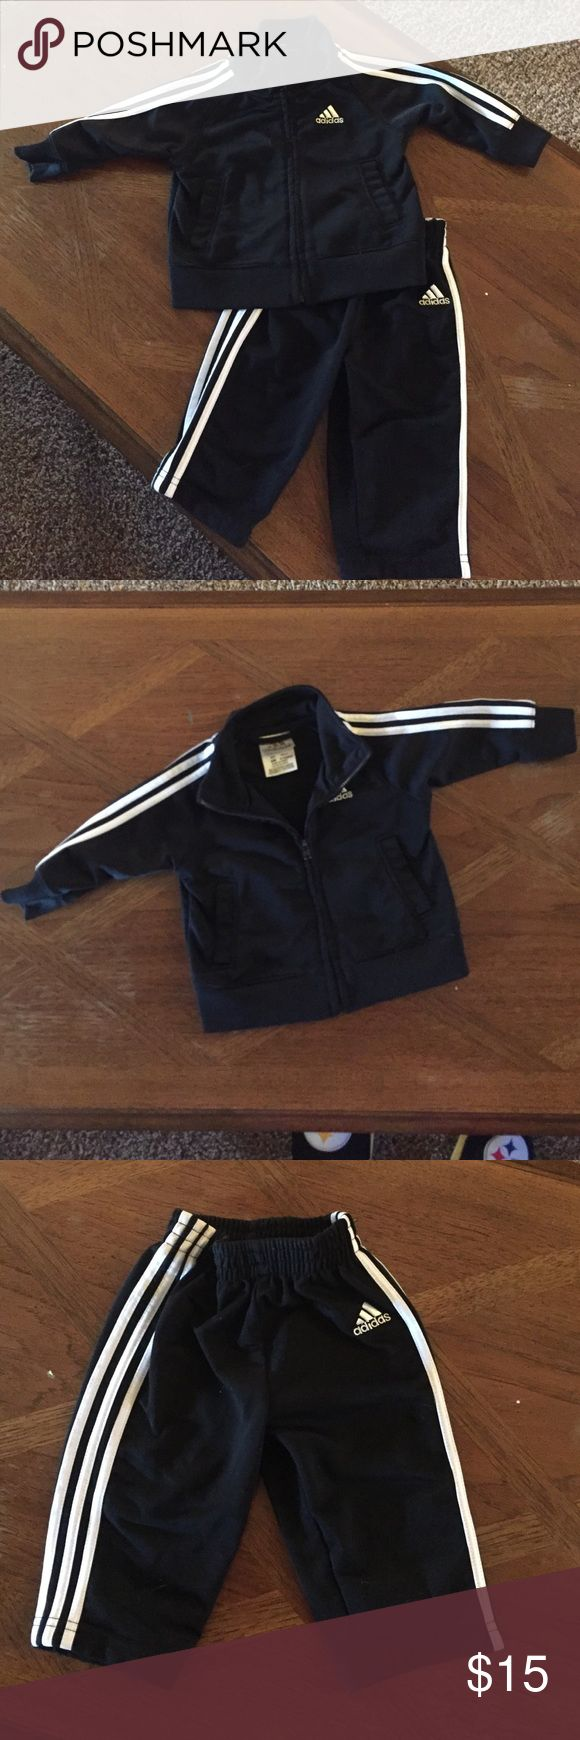 Used adidas outfit Used but in great shape! 100 polyester 6month jacket and bottoms Adidas Matching Sets